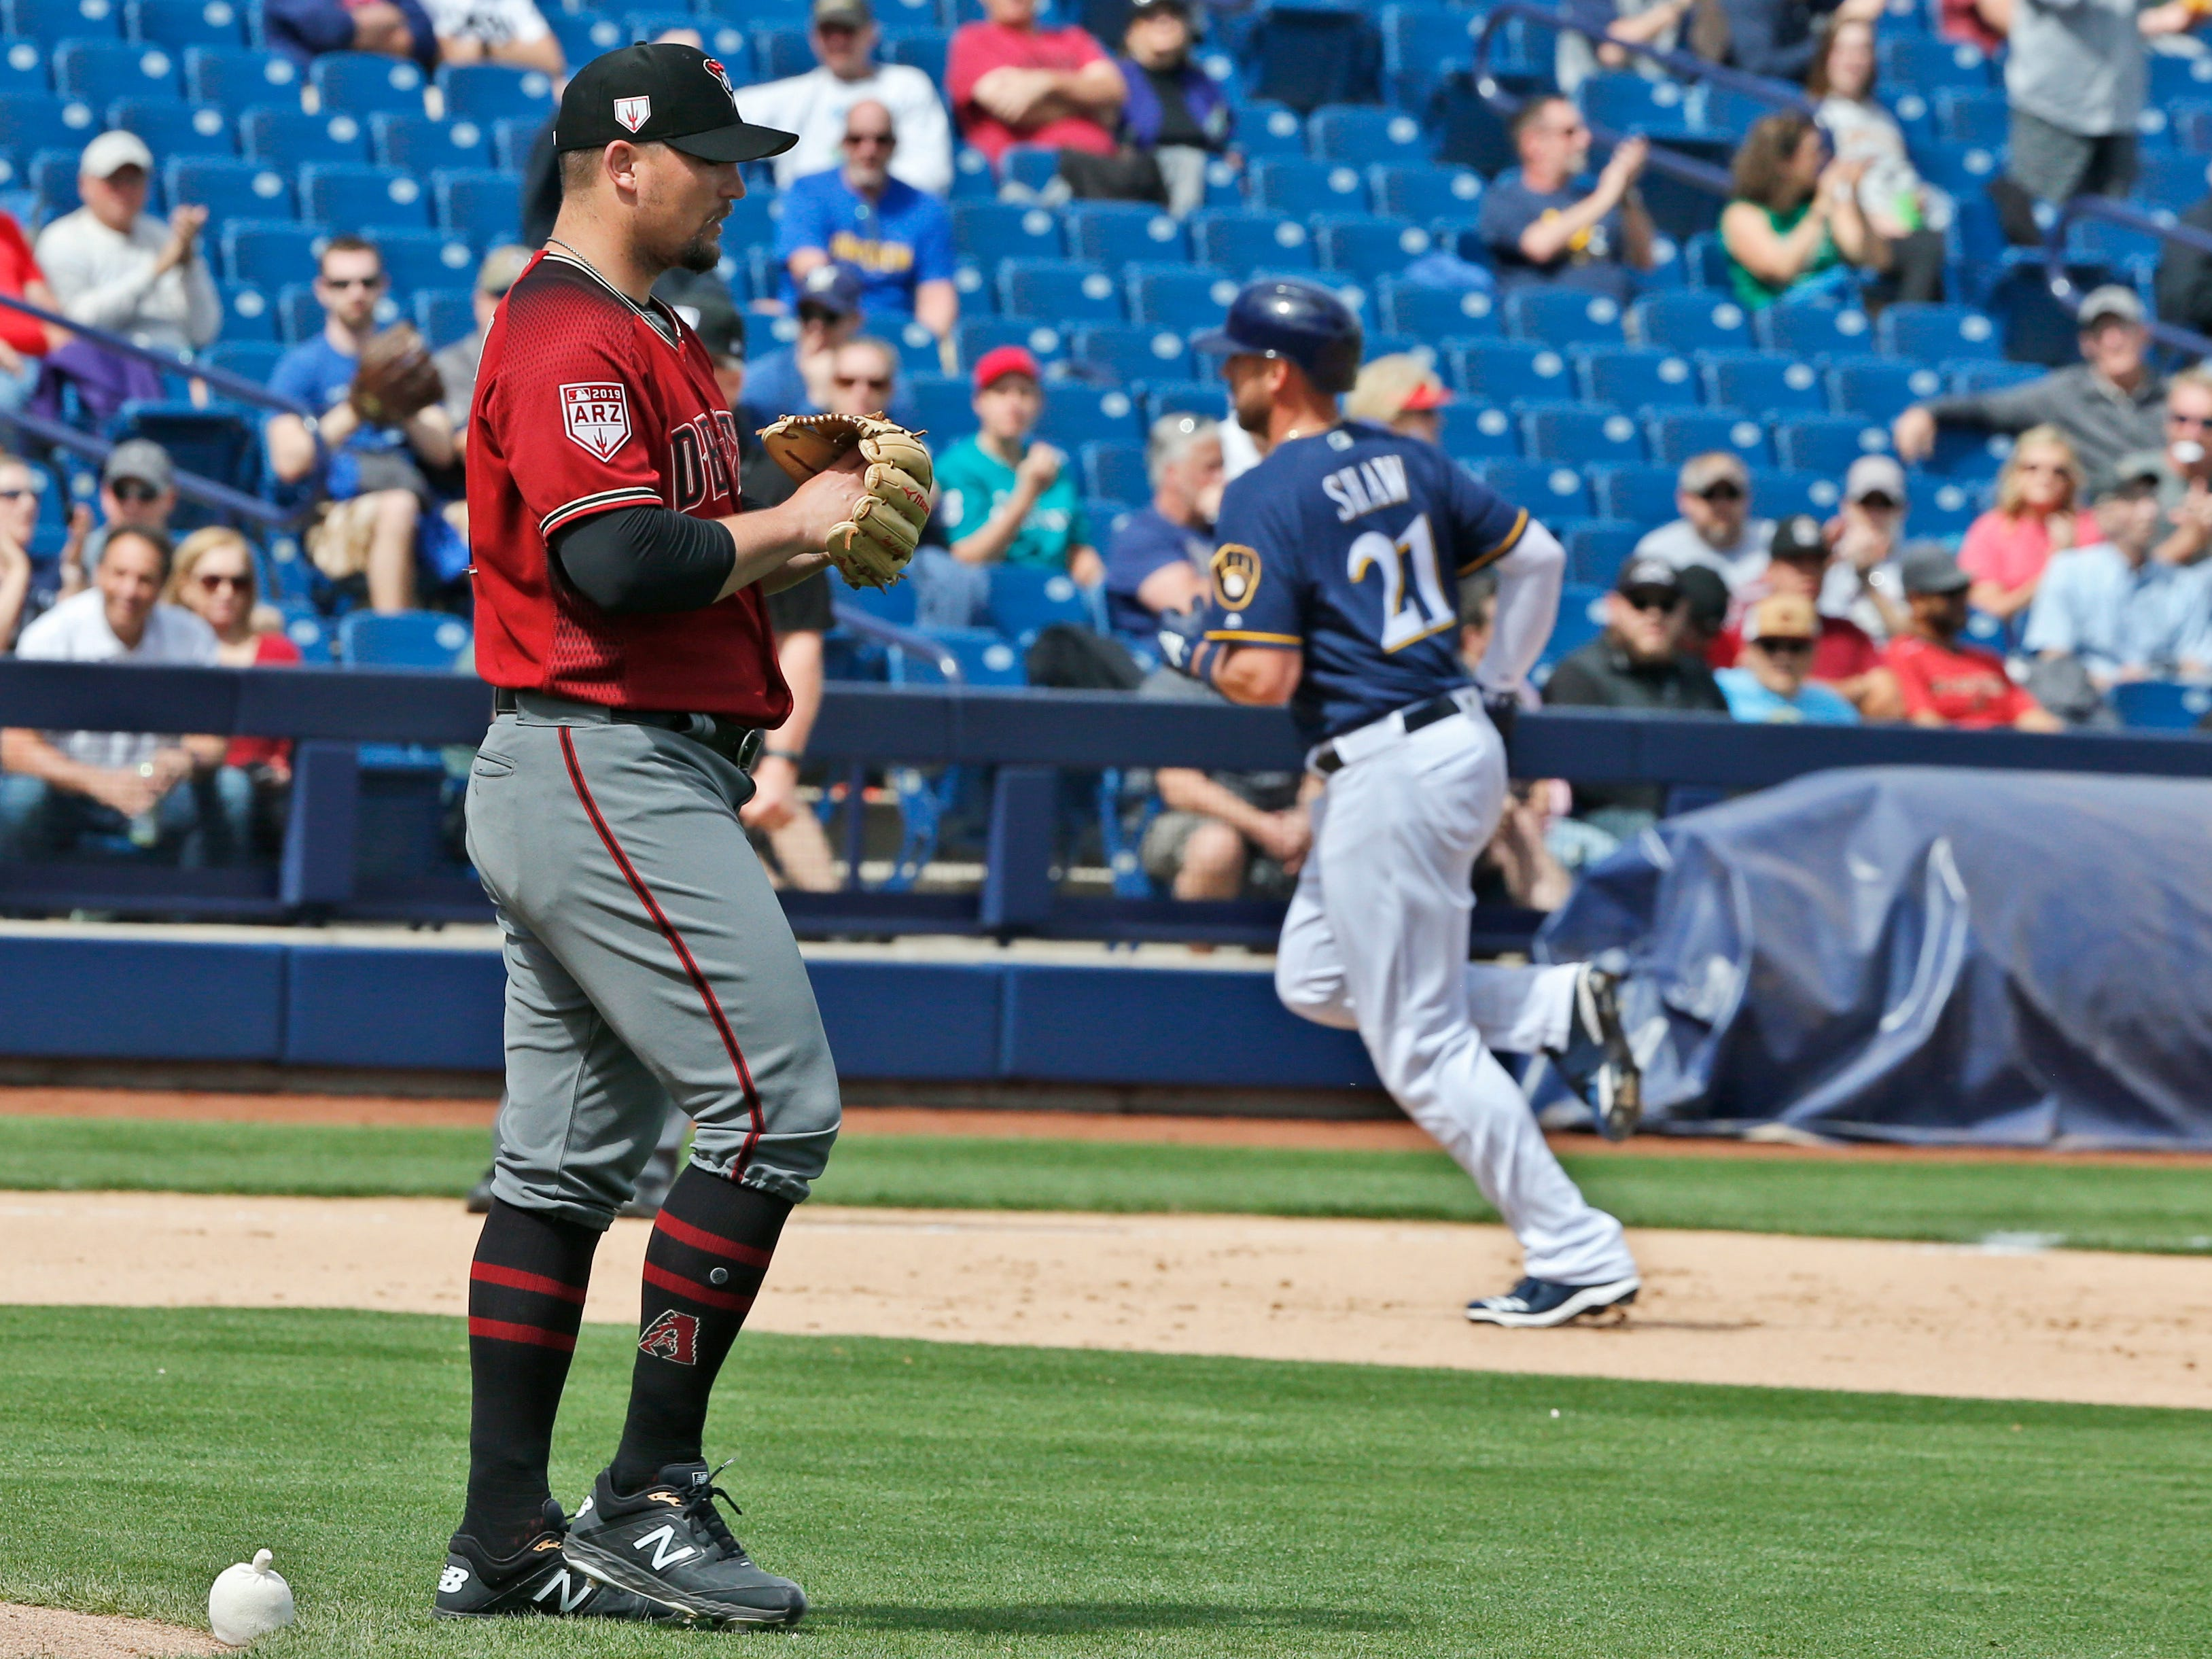 Arizona Diamondbacks starting pitcher Zack Godley, left, walks off the back of the mound as Milwaukee Brewers' Travis Shaw (21) runs the bases following a home run in the fourth inning of a spring training baseball game Friday, March 8, 2019, in Phoenix.